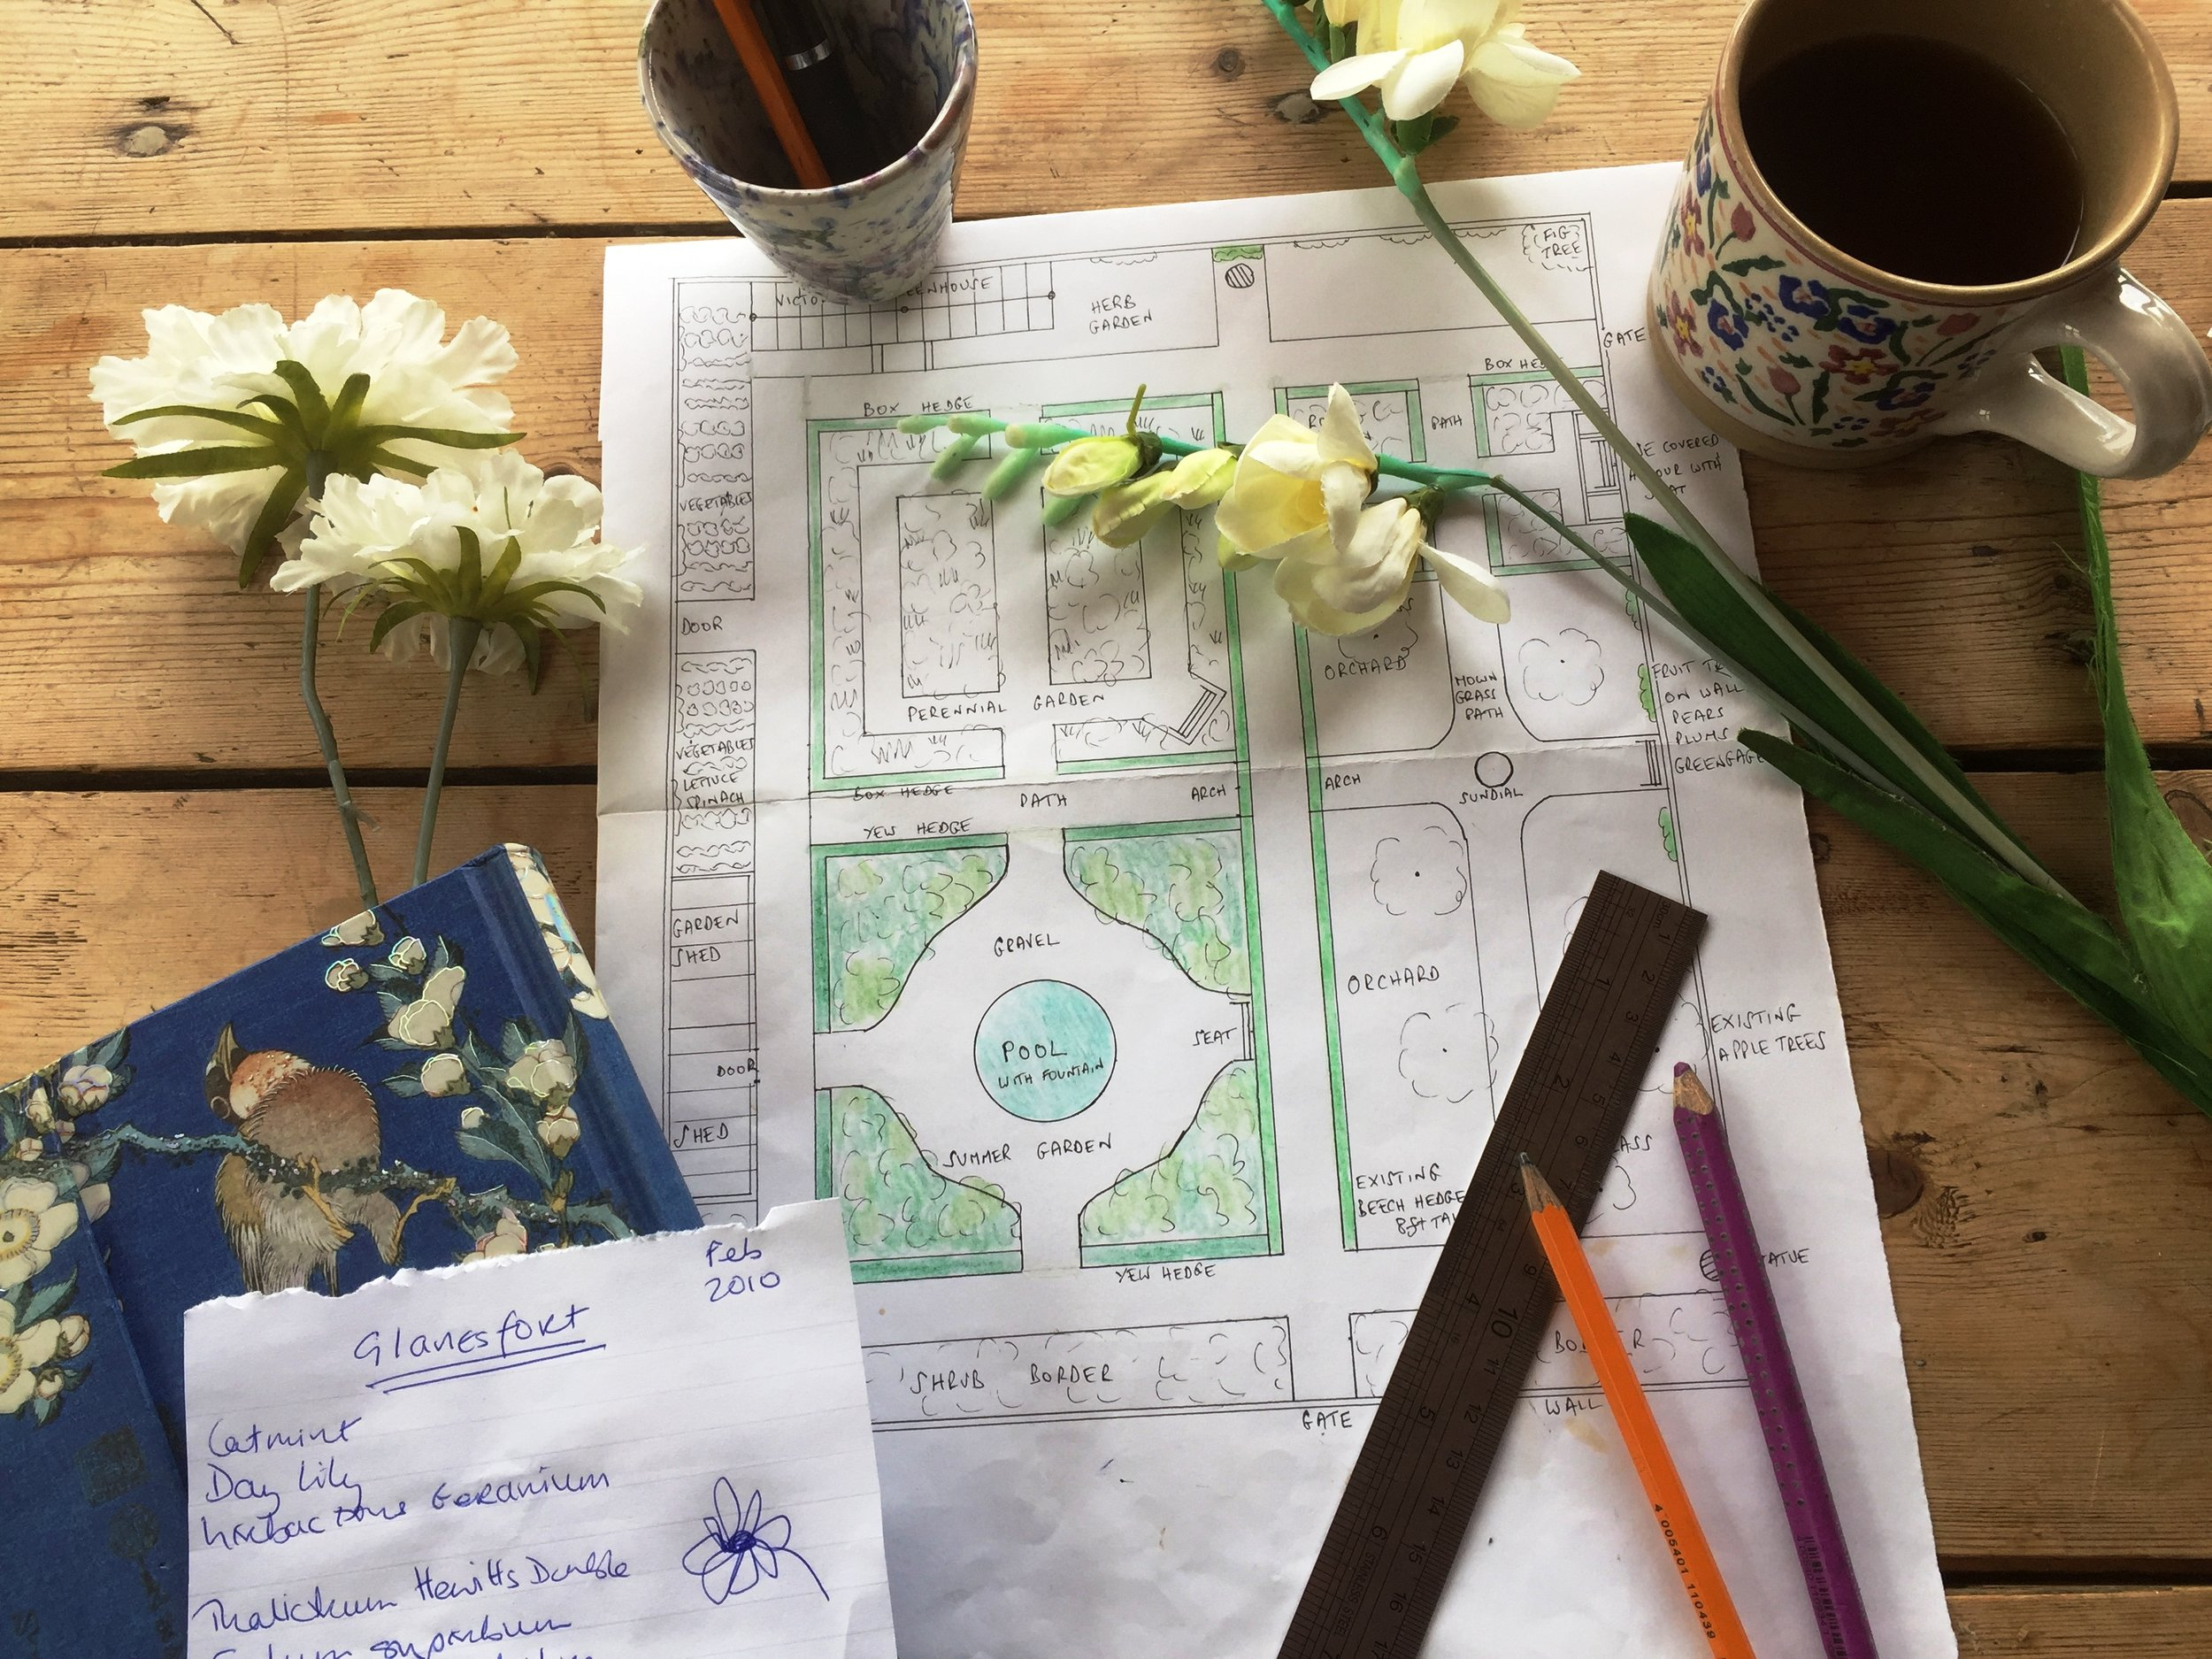 Gilly has been working on her design for the walled garden at Glanesfort (THE NEGLECTED GARDEN - due to be published in 2018)